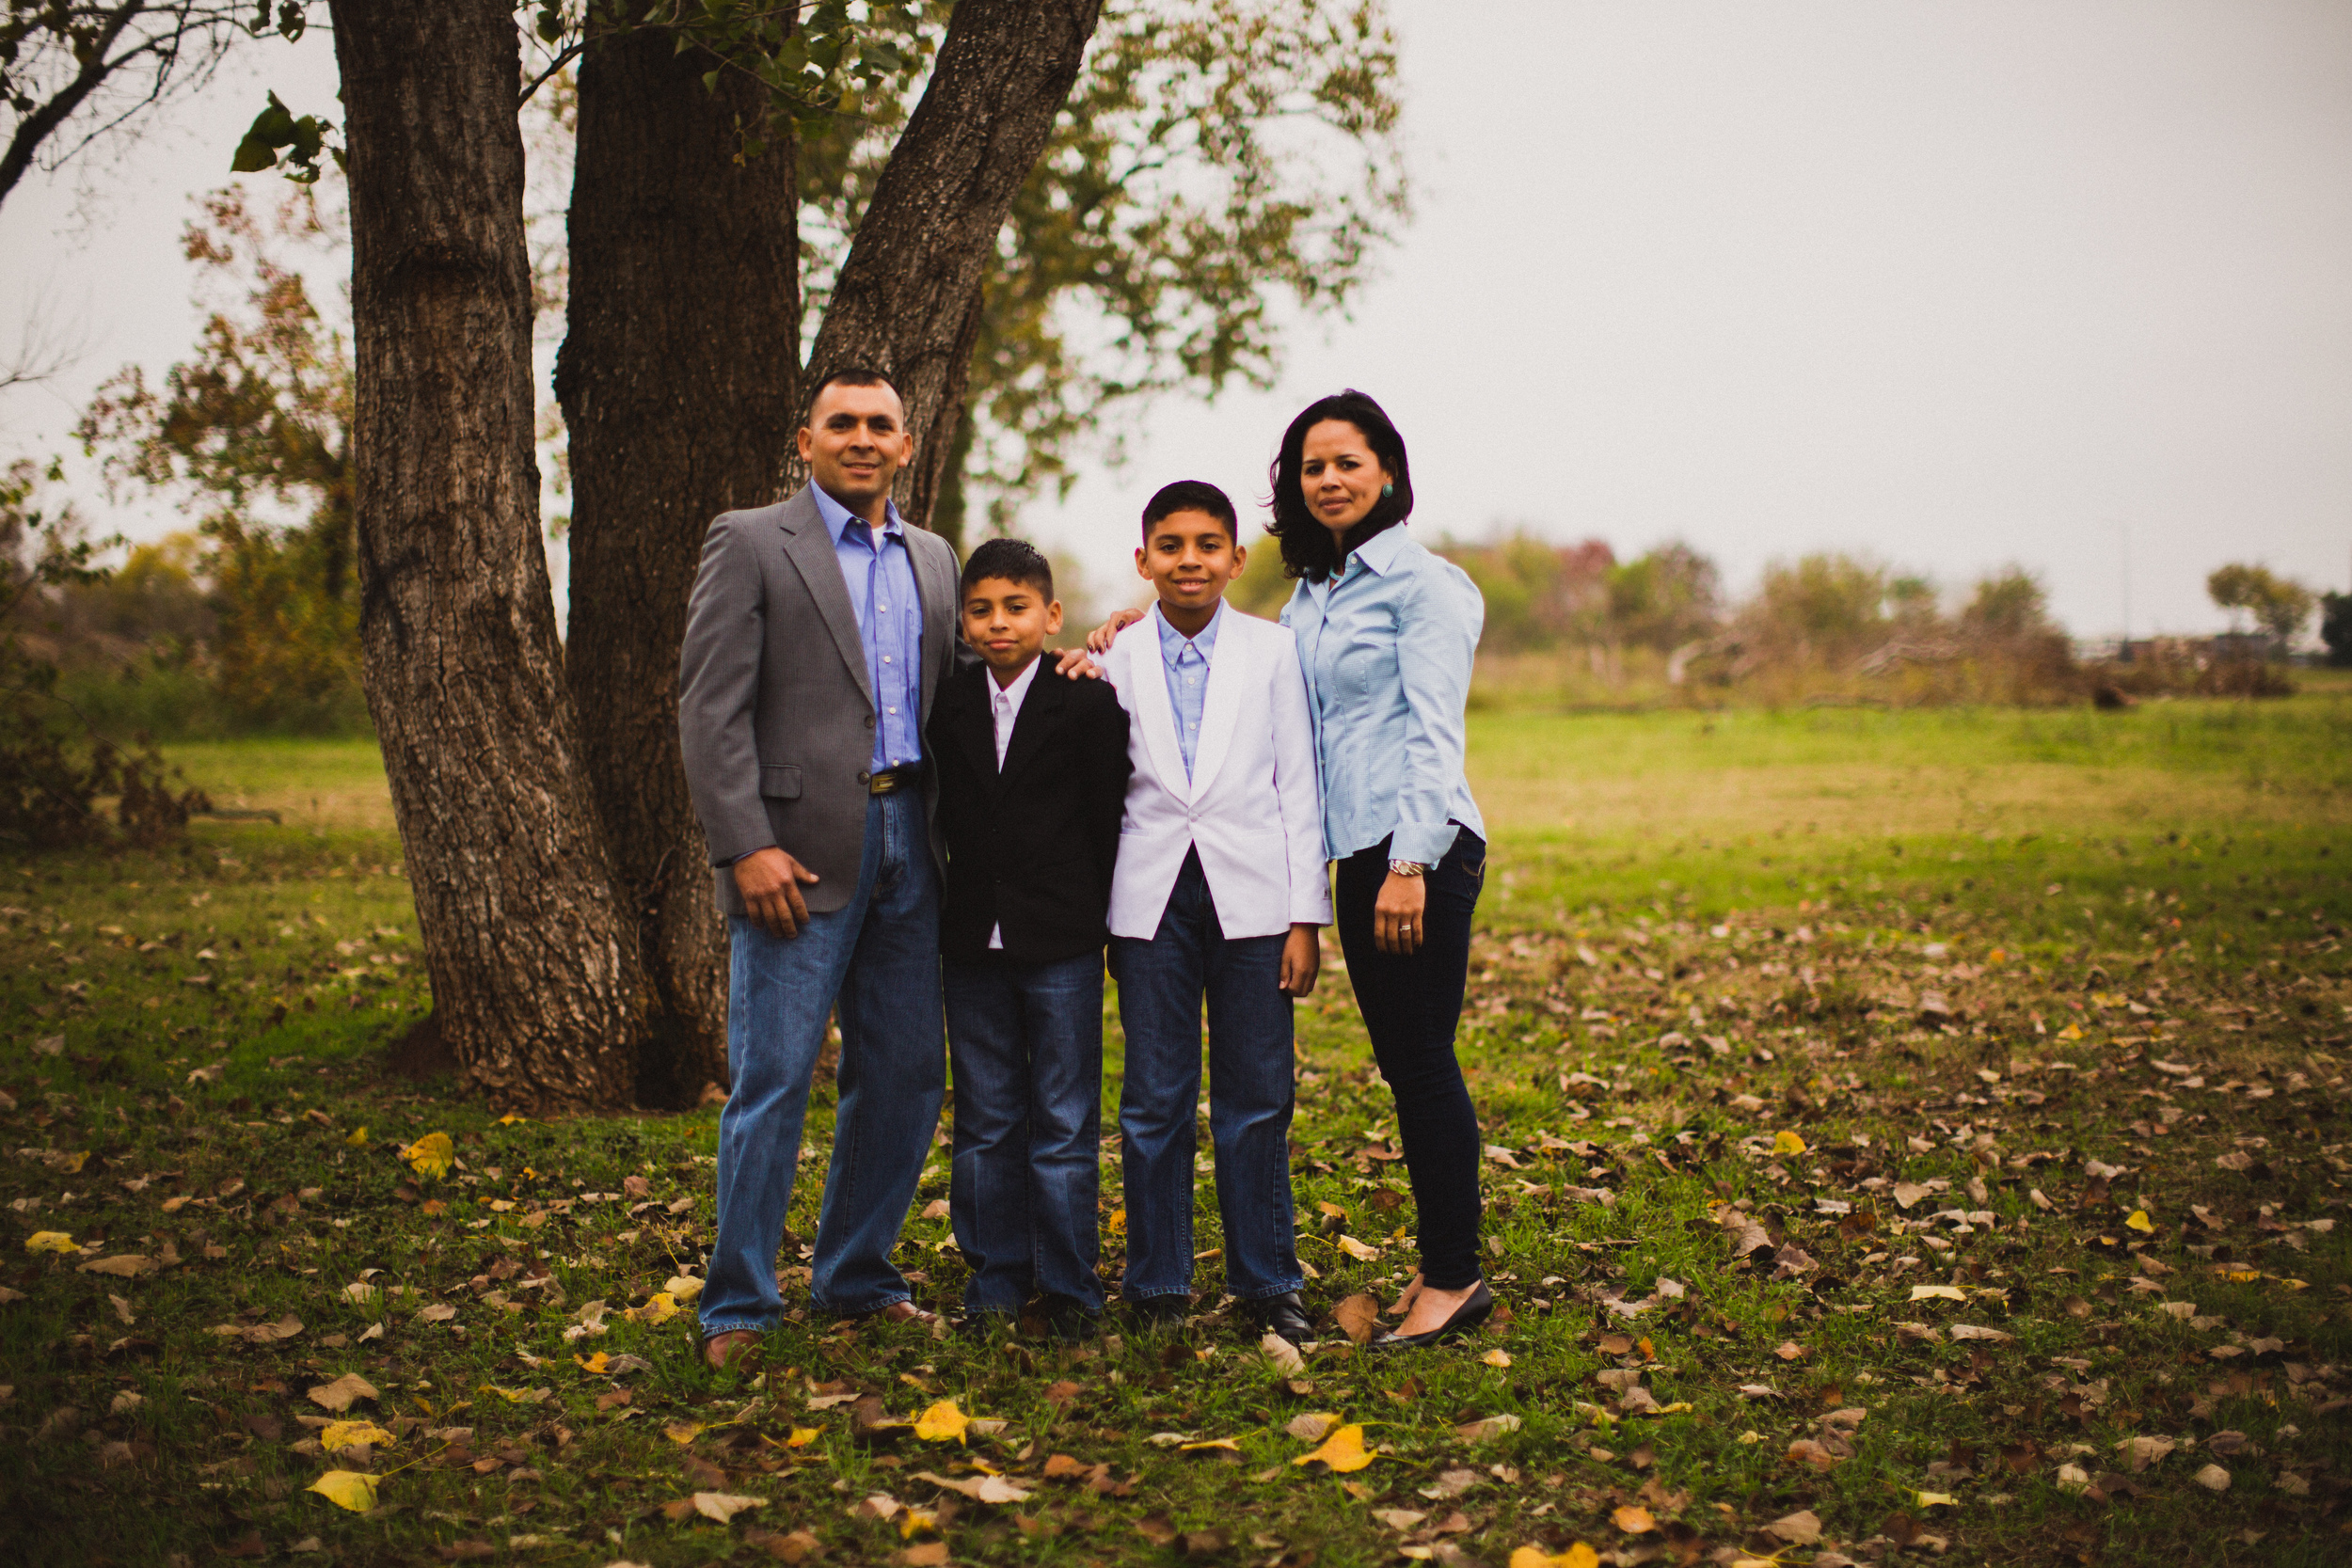 houston family photography_h2014_henriquez-2.jpg